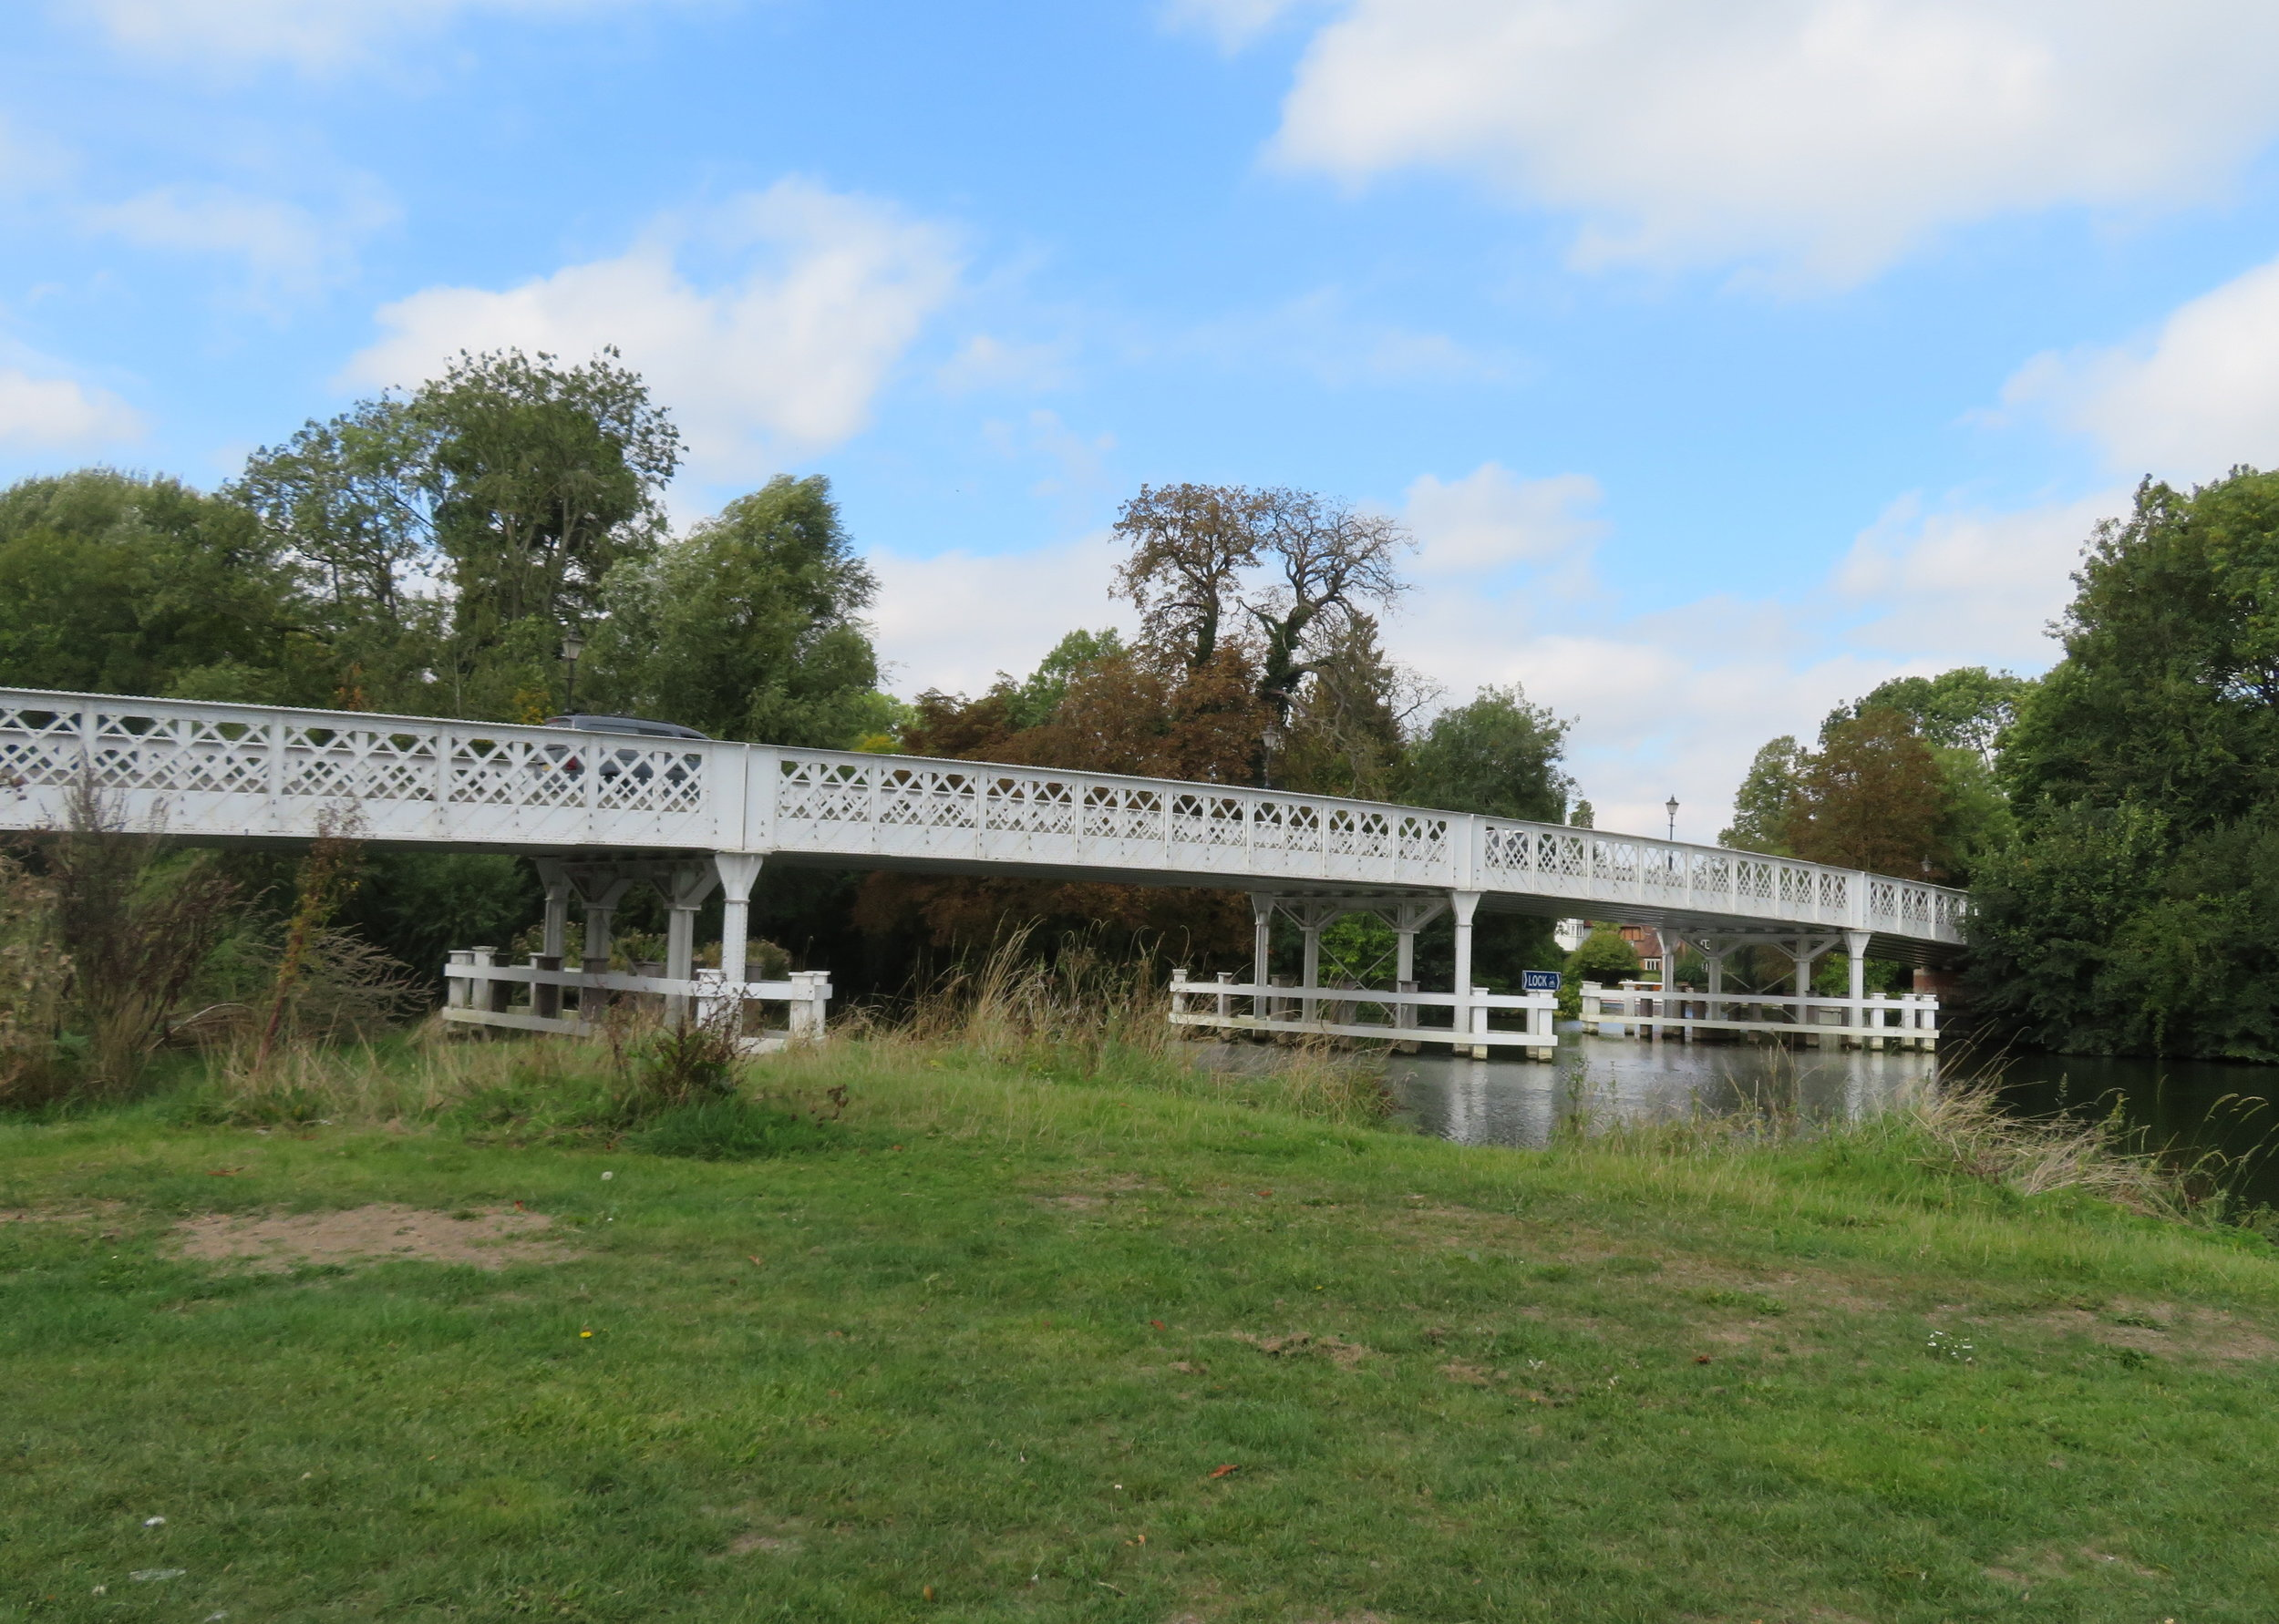 Pangborne Bridge marked our half way point on the Thames Path.